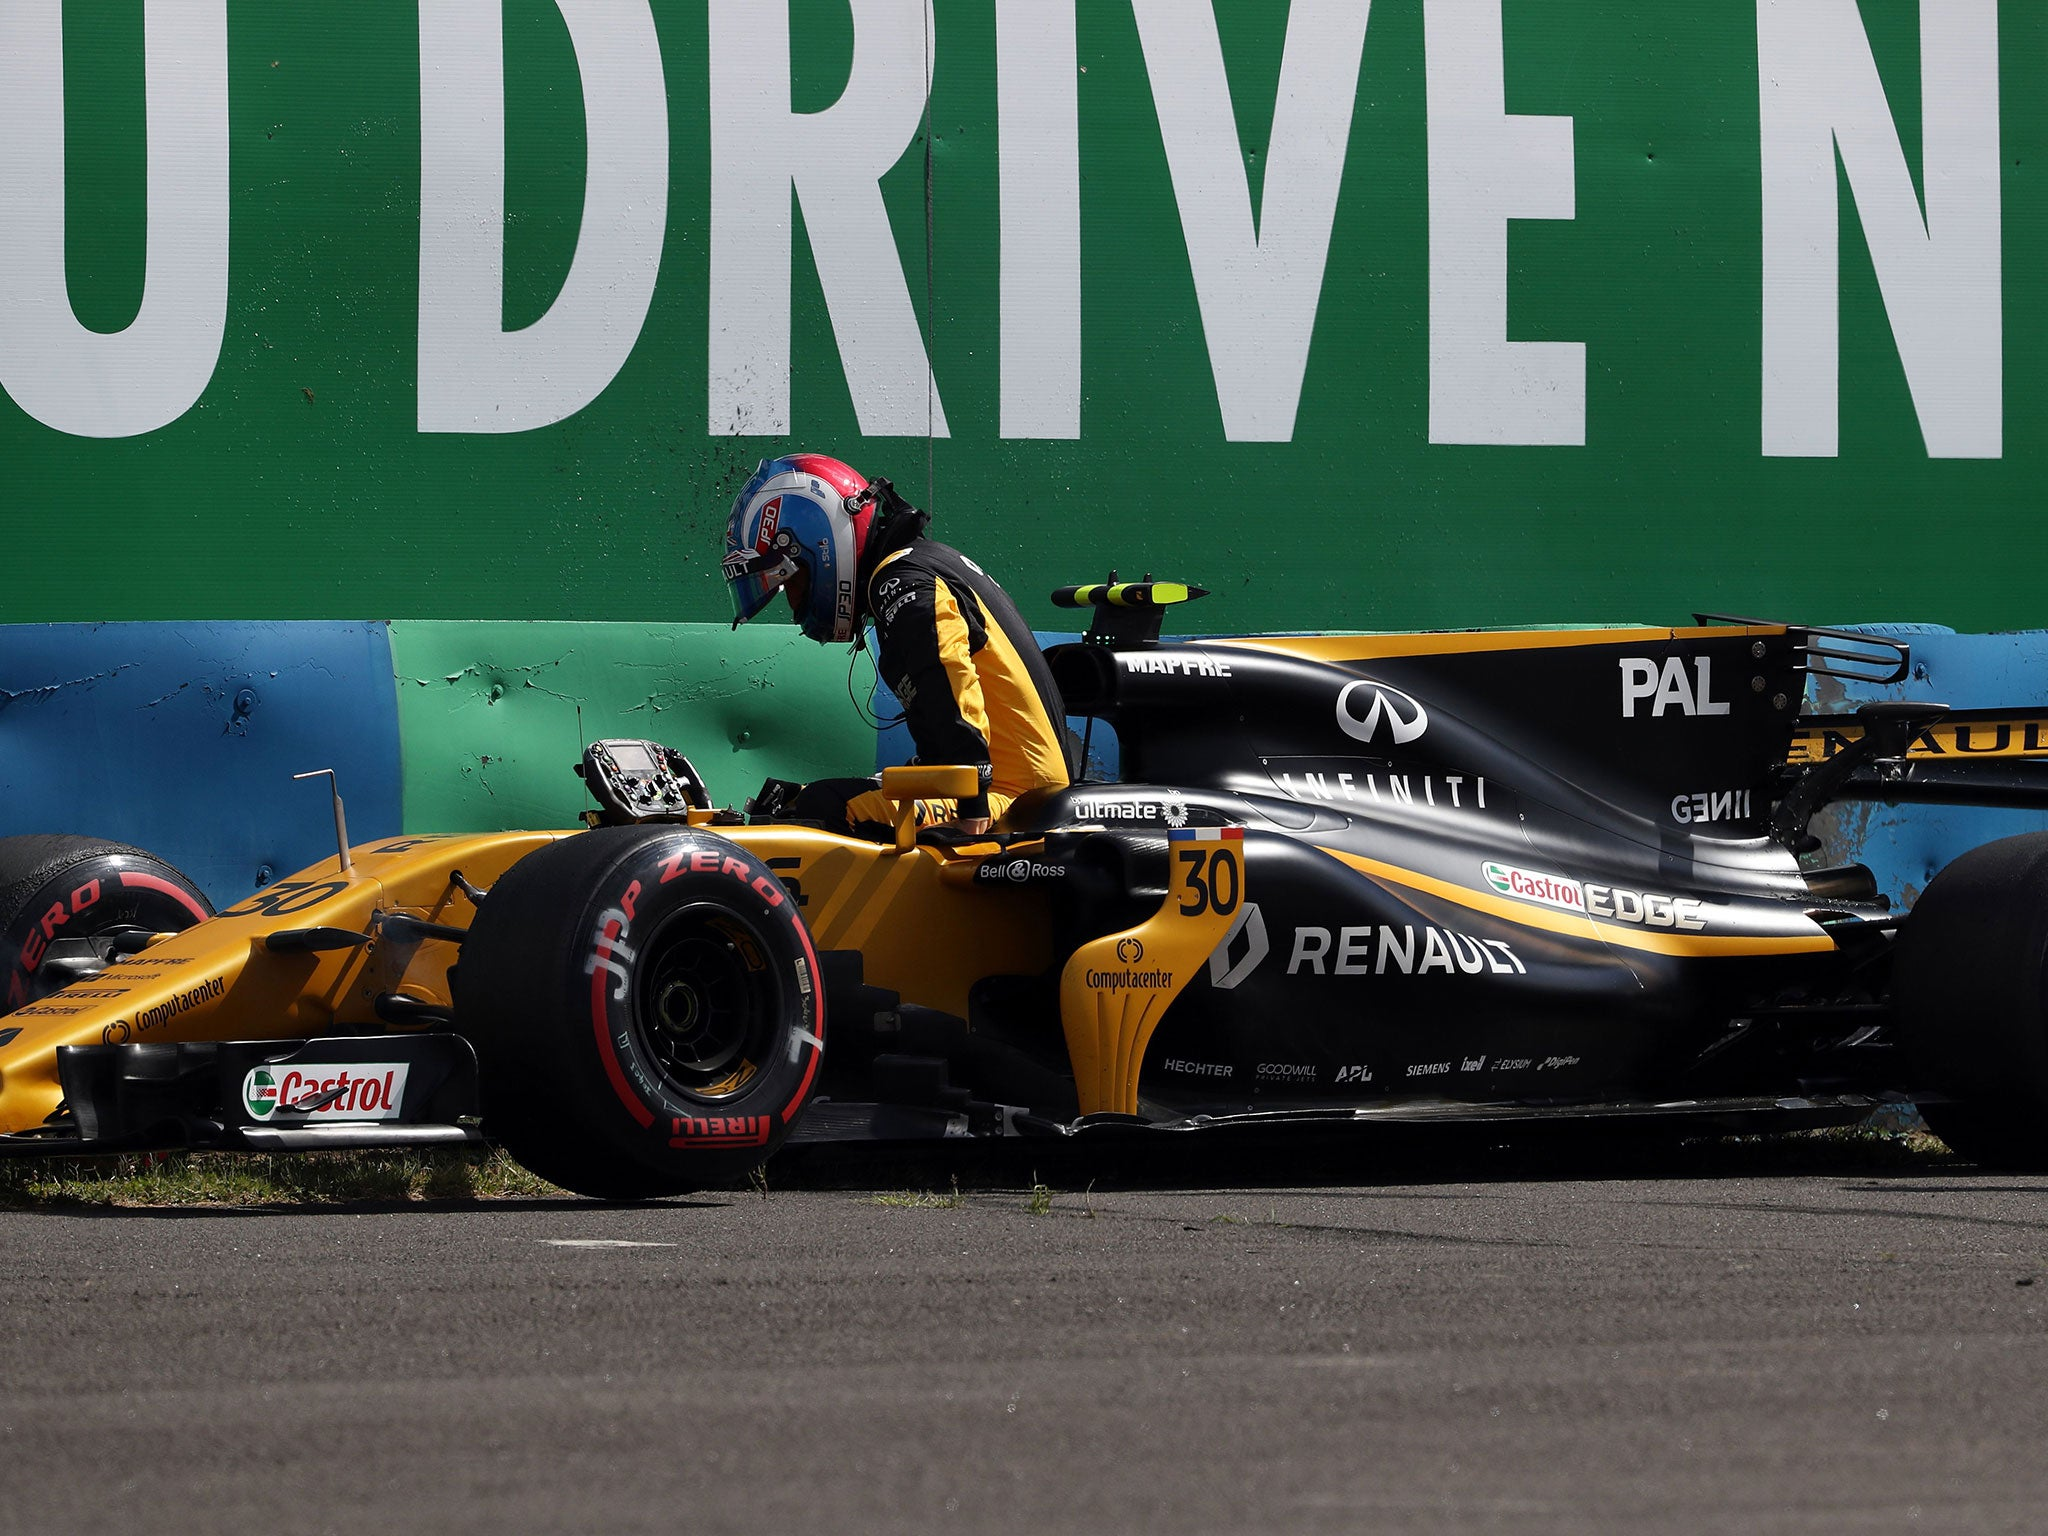 Palmer crash fans the flames as kubica and rowland watch on at renault